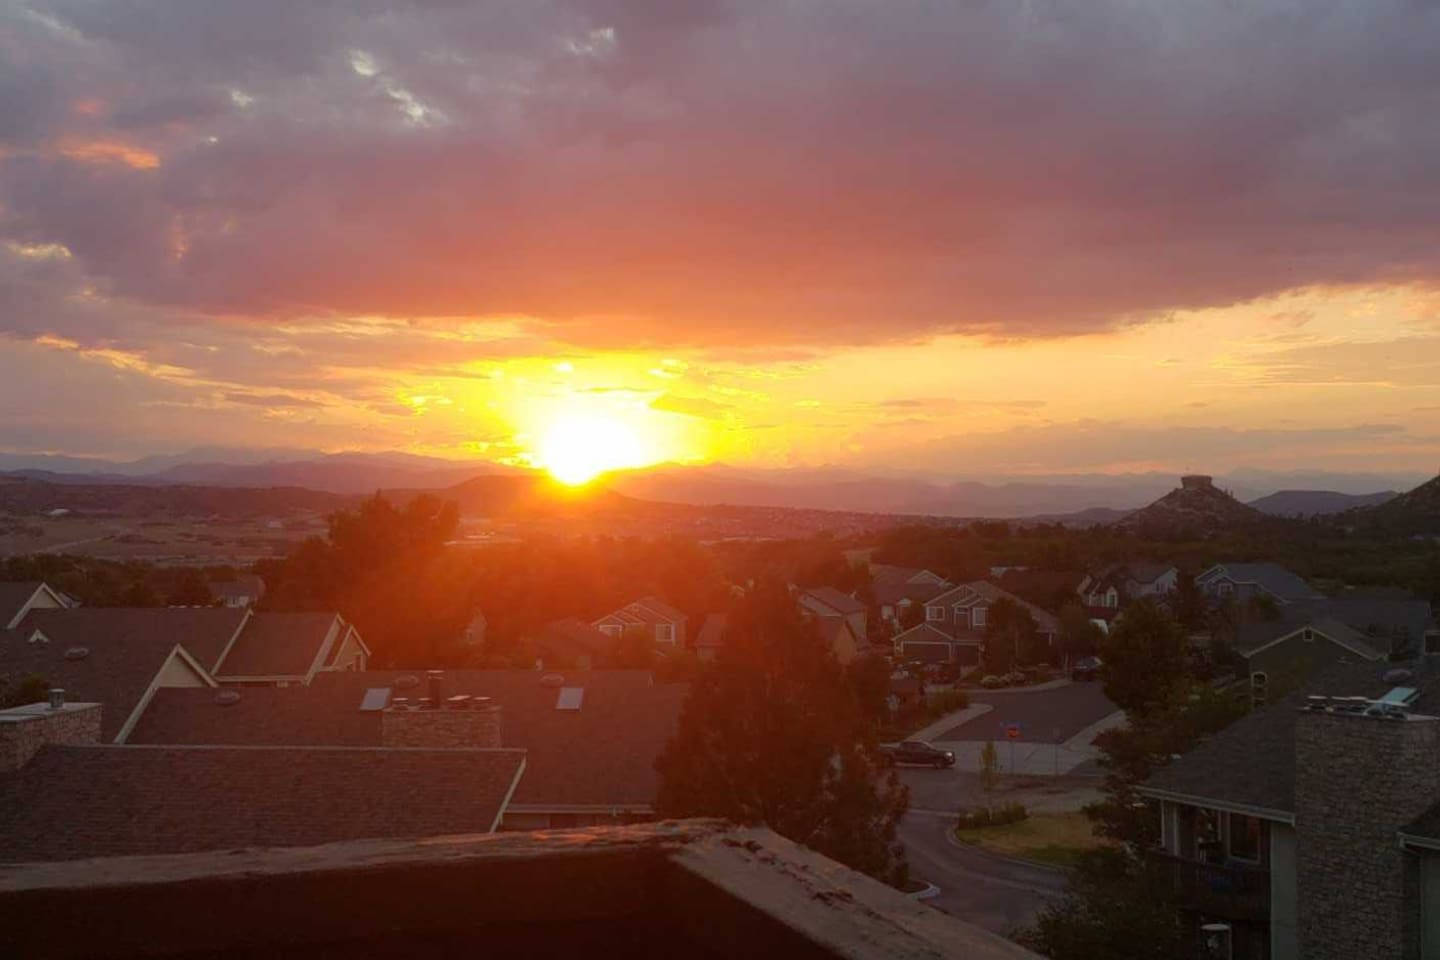 Everyday you will experience an amazing sunset as the sun slowly sets over the Great Rockies.